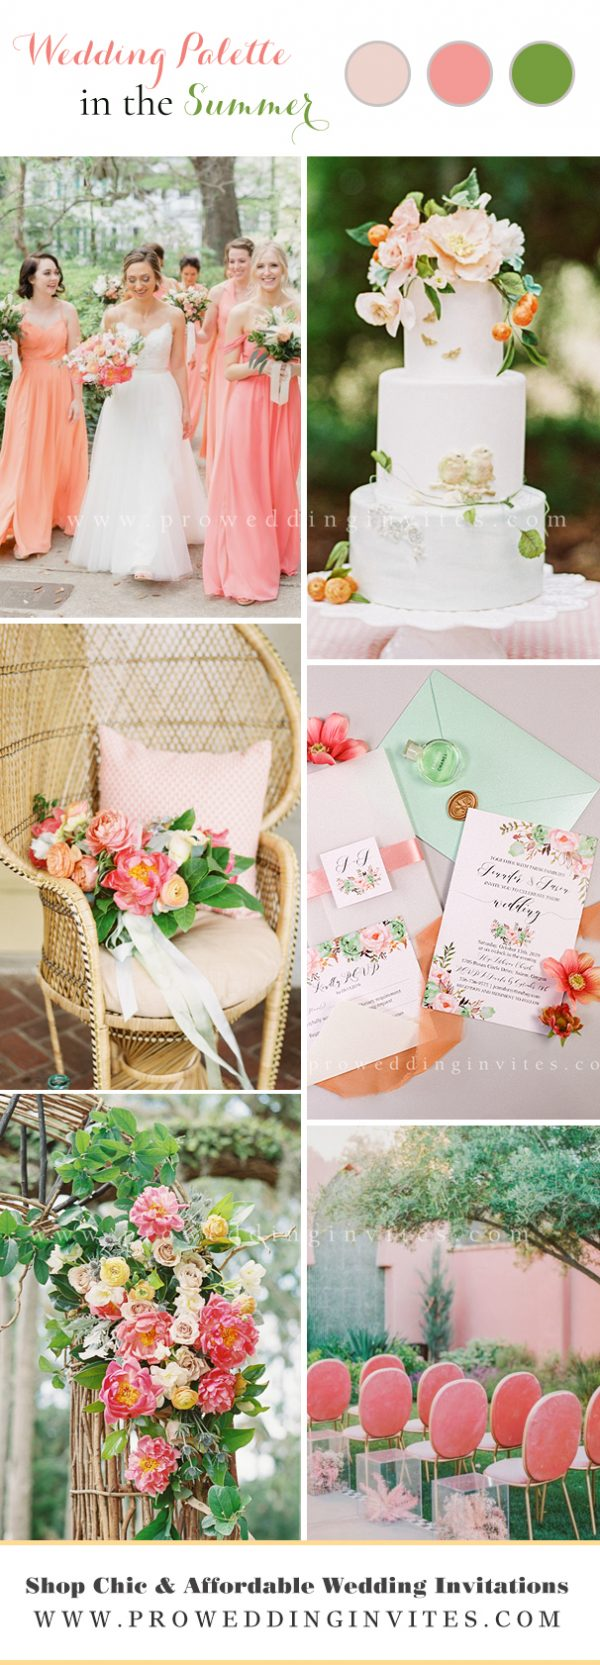 Modern Country-Styled Summer Wedding Color Palette: Blush hues, mint and jade.